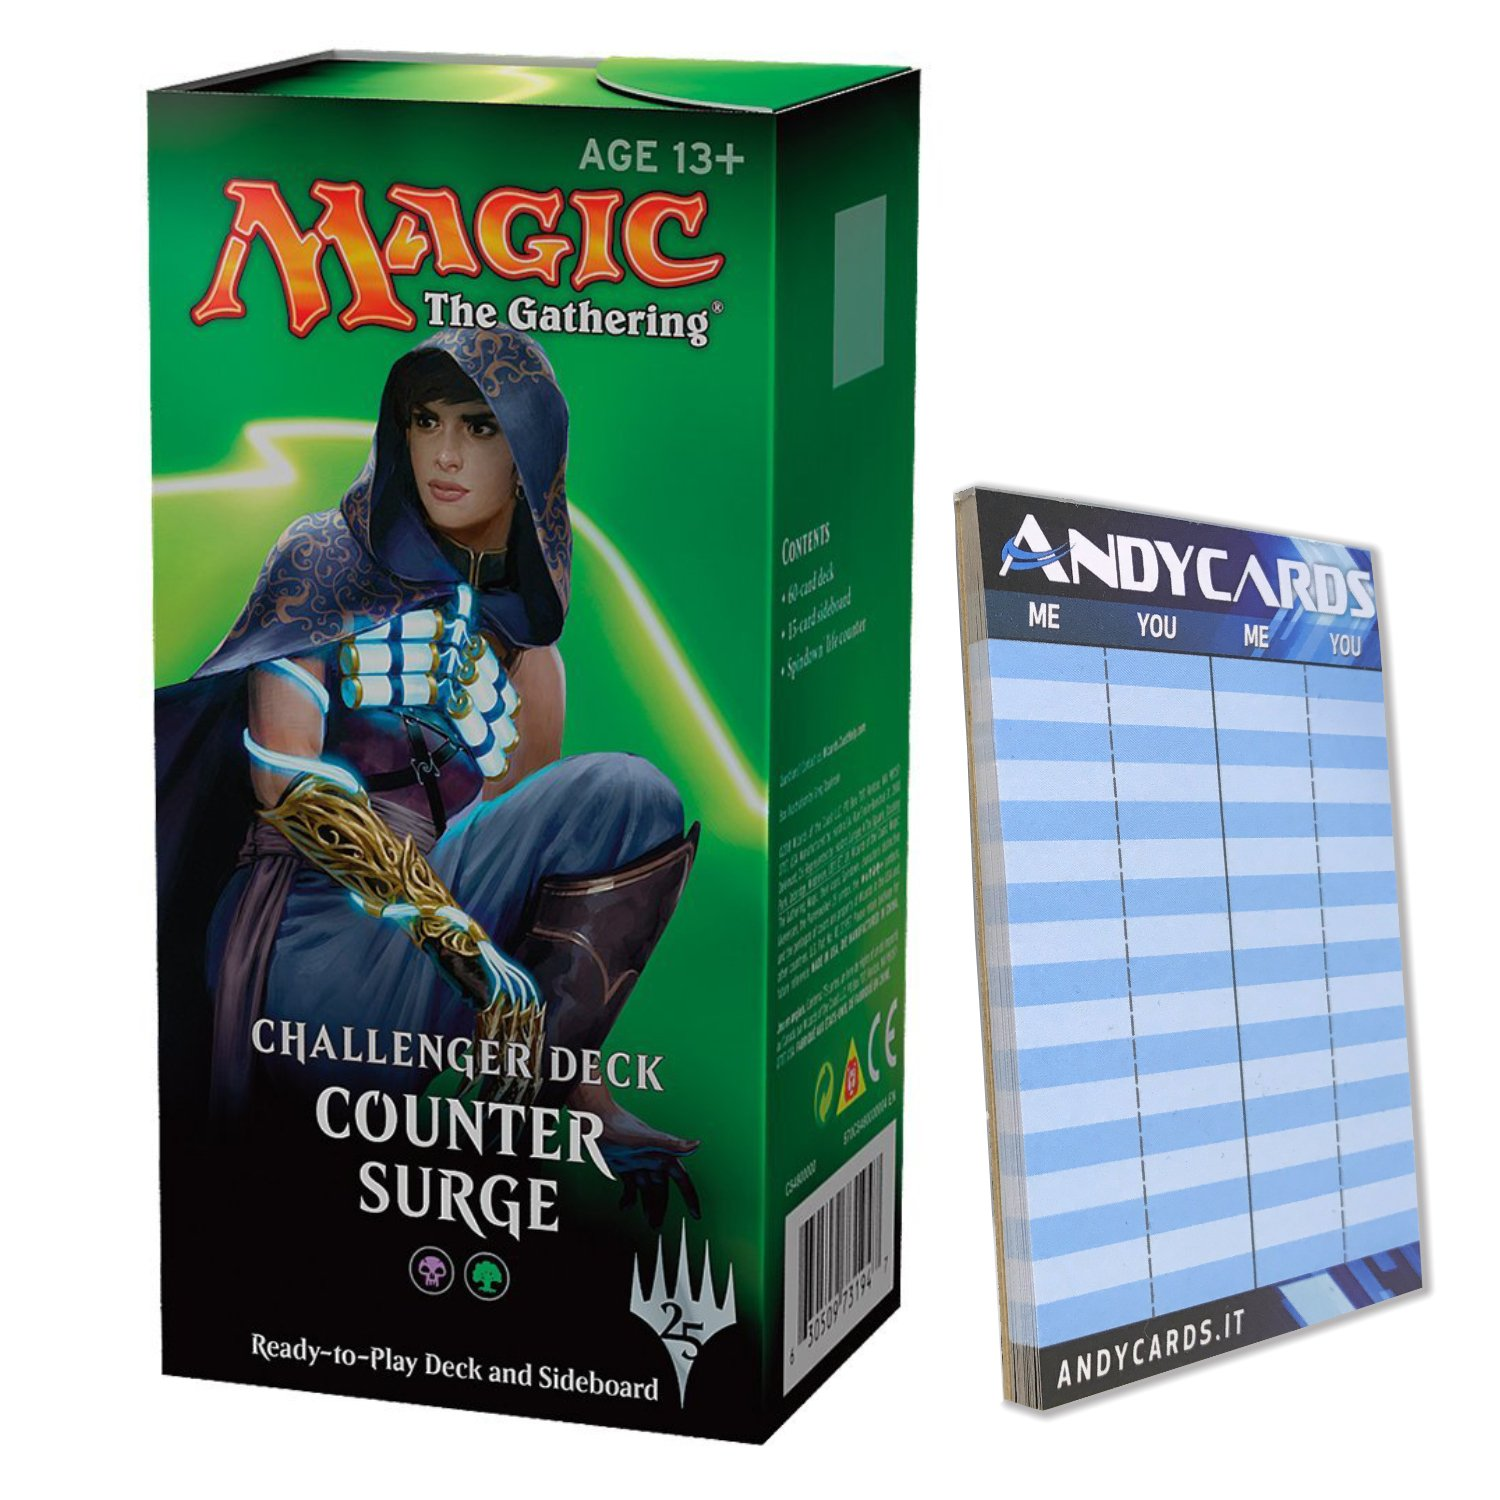 Challenger Deck: COUNTER SURGE in ENGLISH - Black Green - MTG Magic The Gathering + Andycards Scorepad